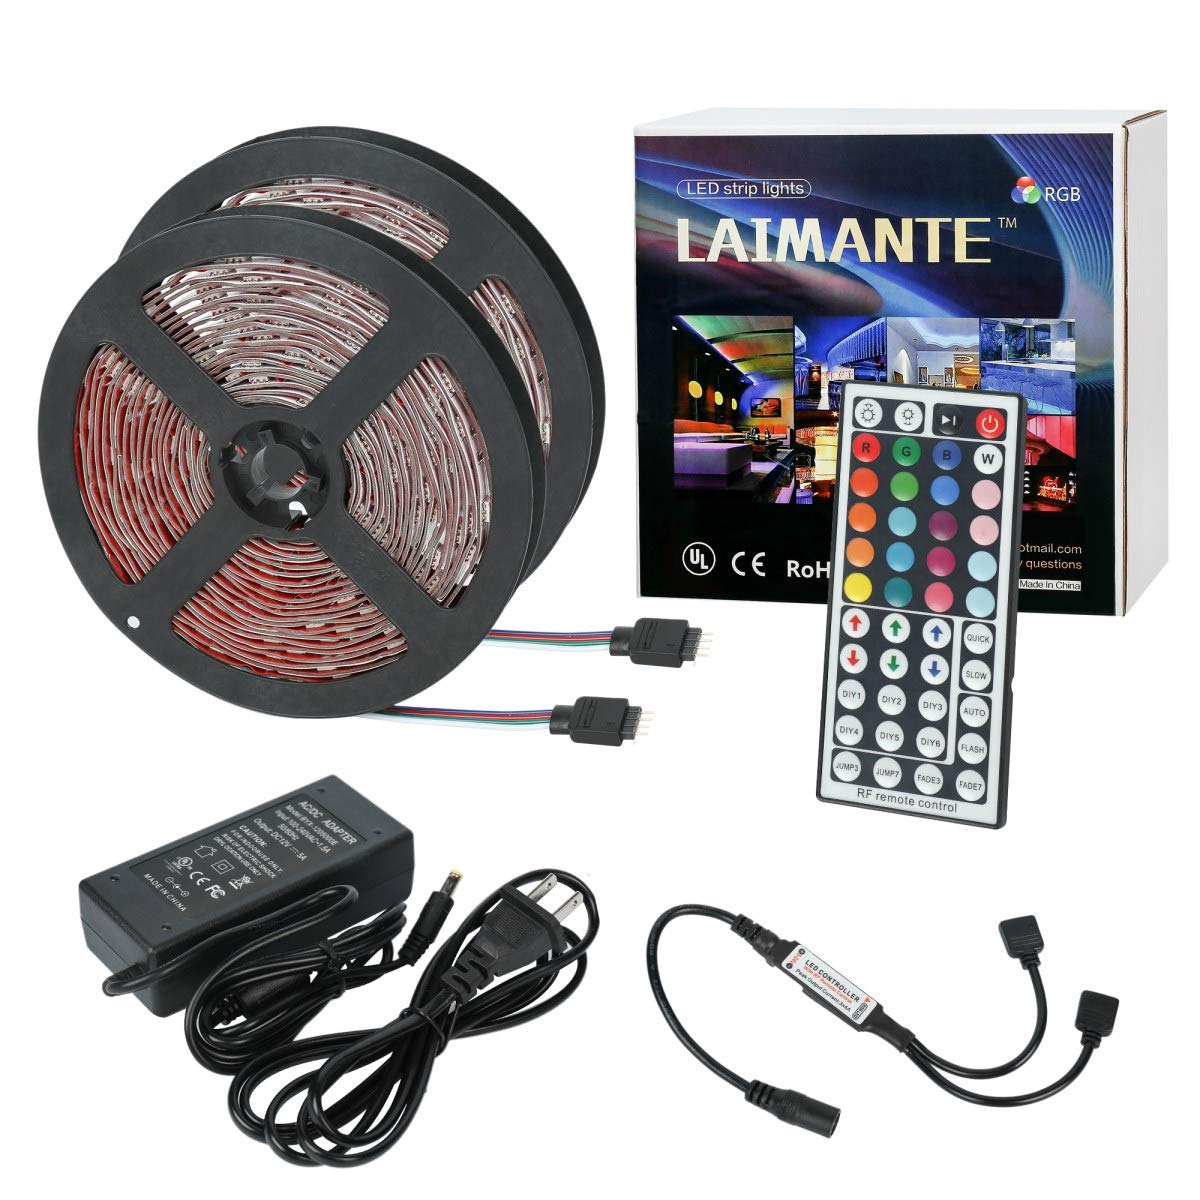 32.8ft 5050 RGB Rope Lights Non-Waterproof Laimante Led Strip Lights DC12V Color Changing Strip Lights kit with RF Remote Controller and UL Power Adapter